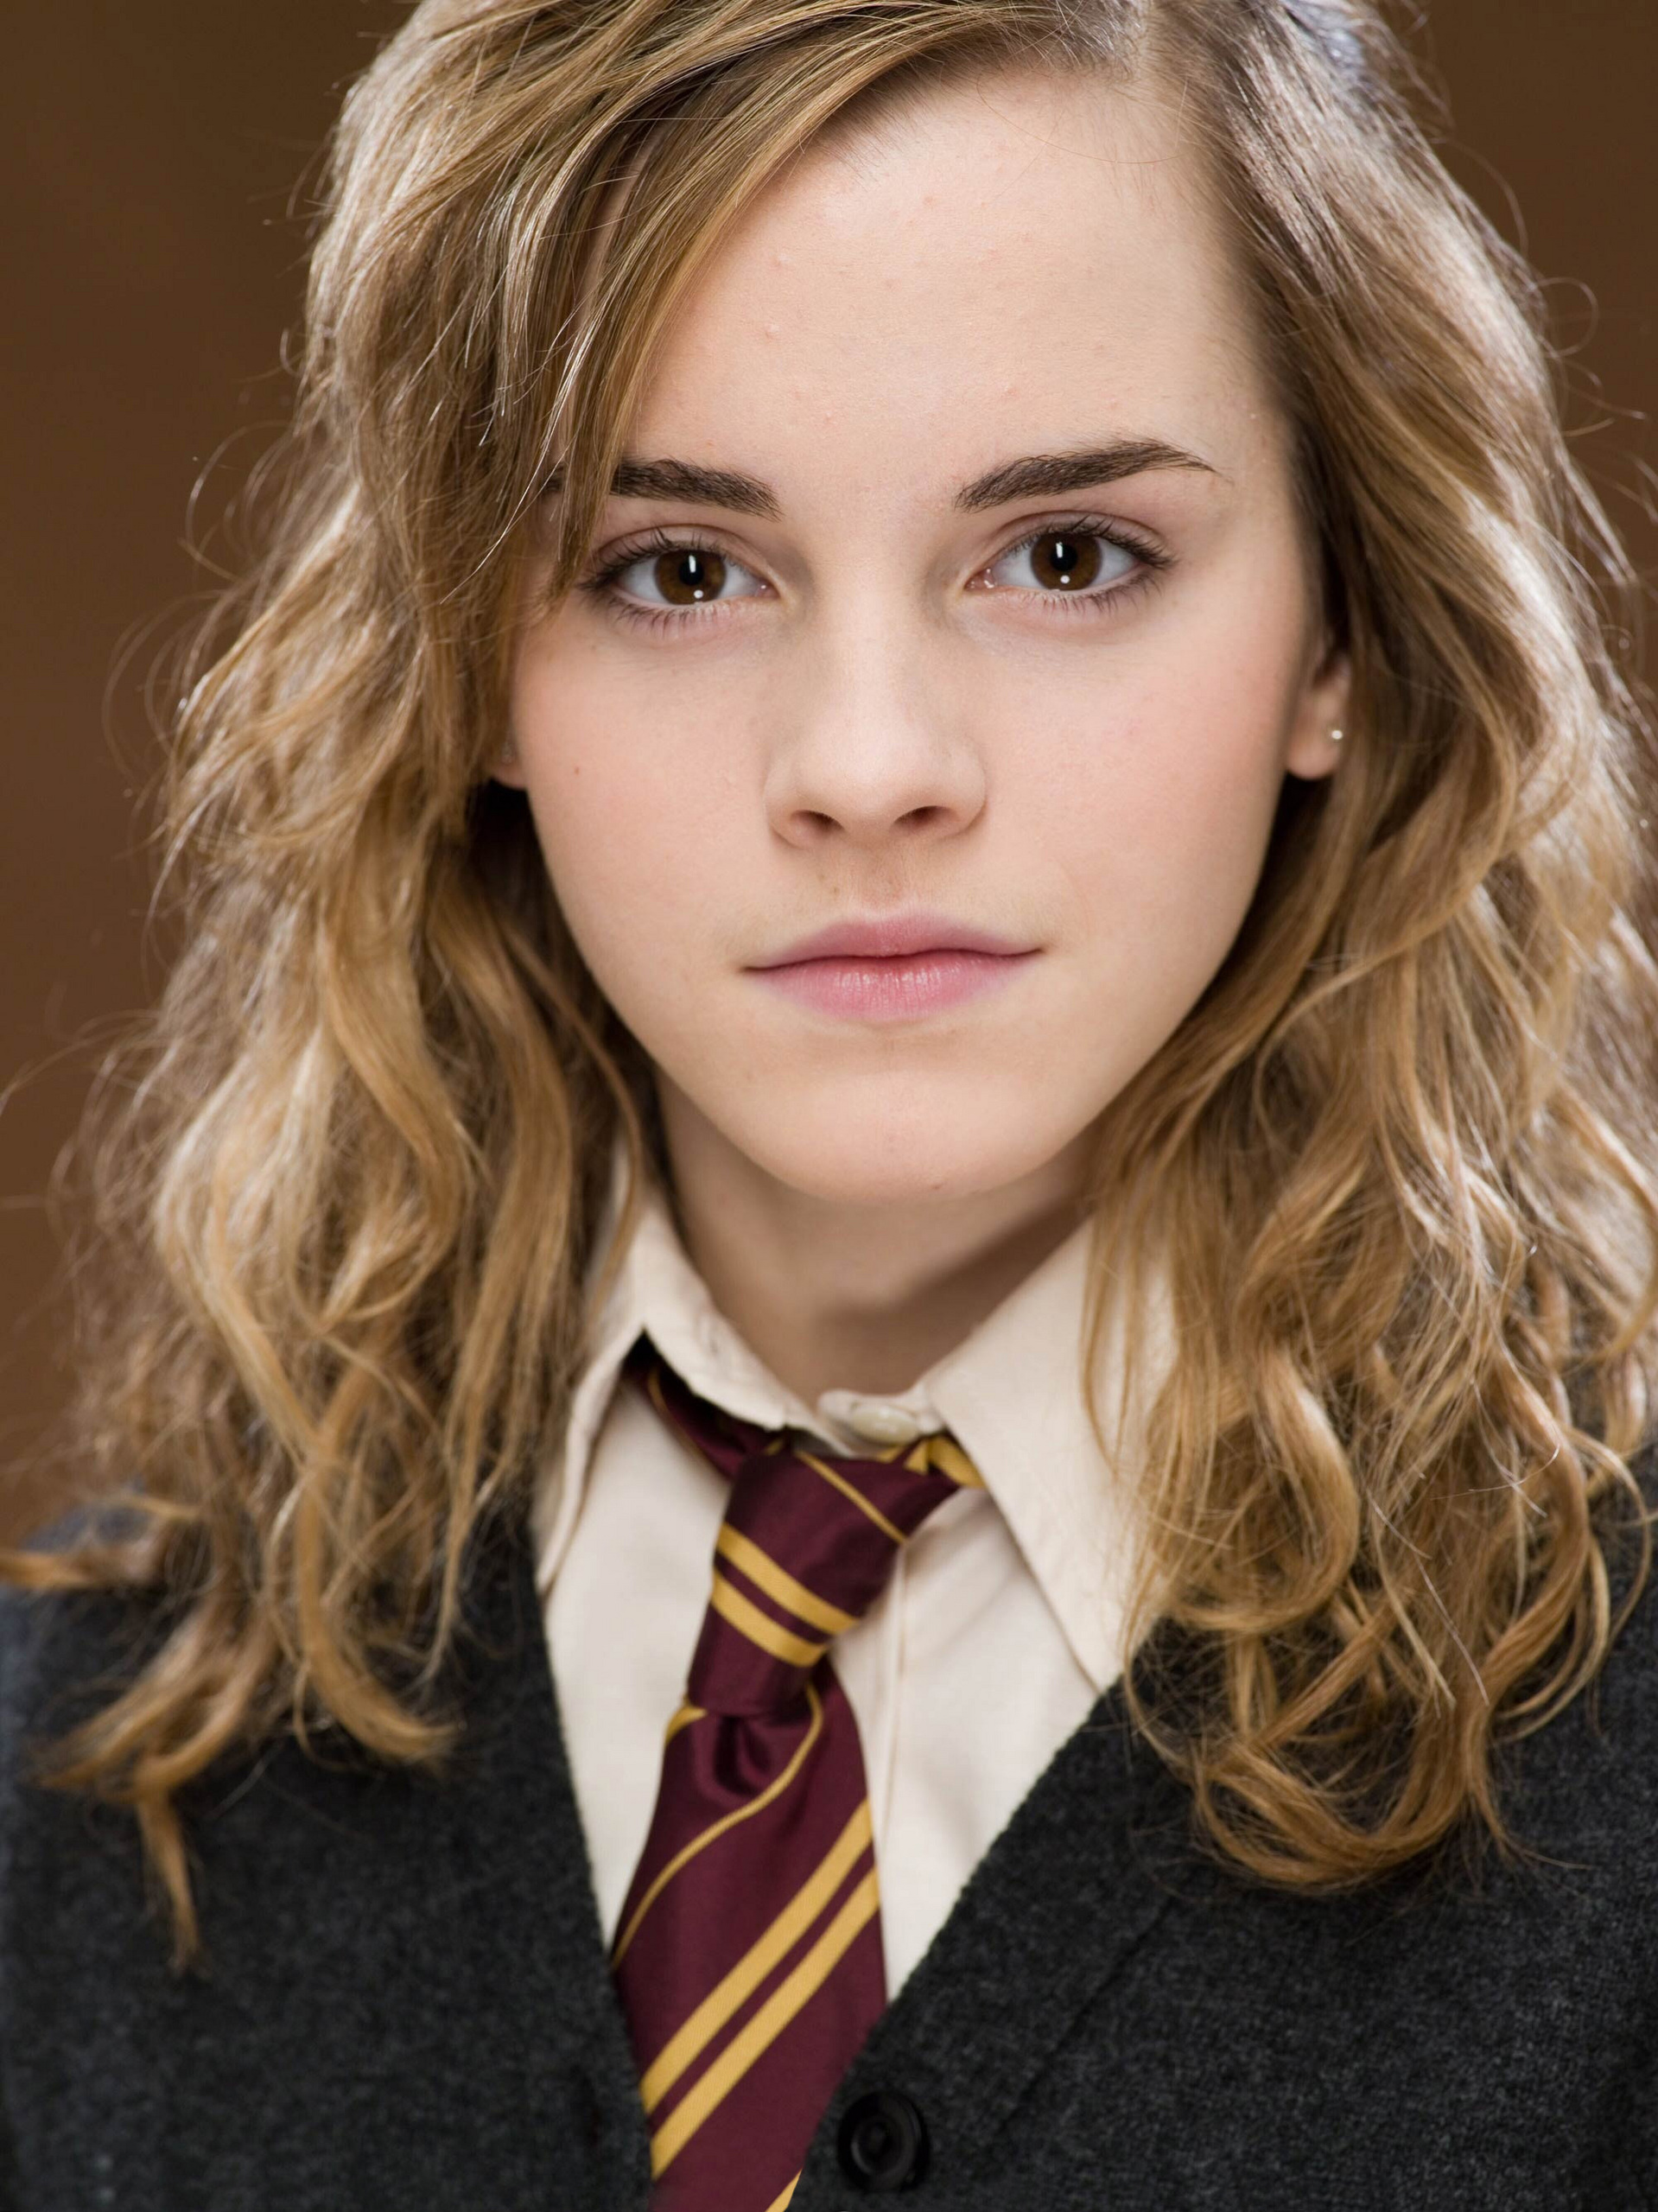 http://img3.wikia.nocookie.net/__cb20120413221757/harrypotter/images/0/0a/Hermione_Granger_OOTP_promo_f_1.jpg